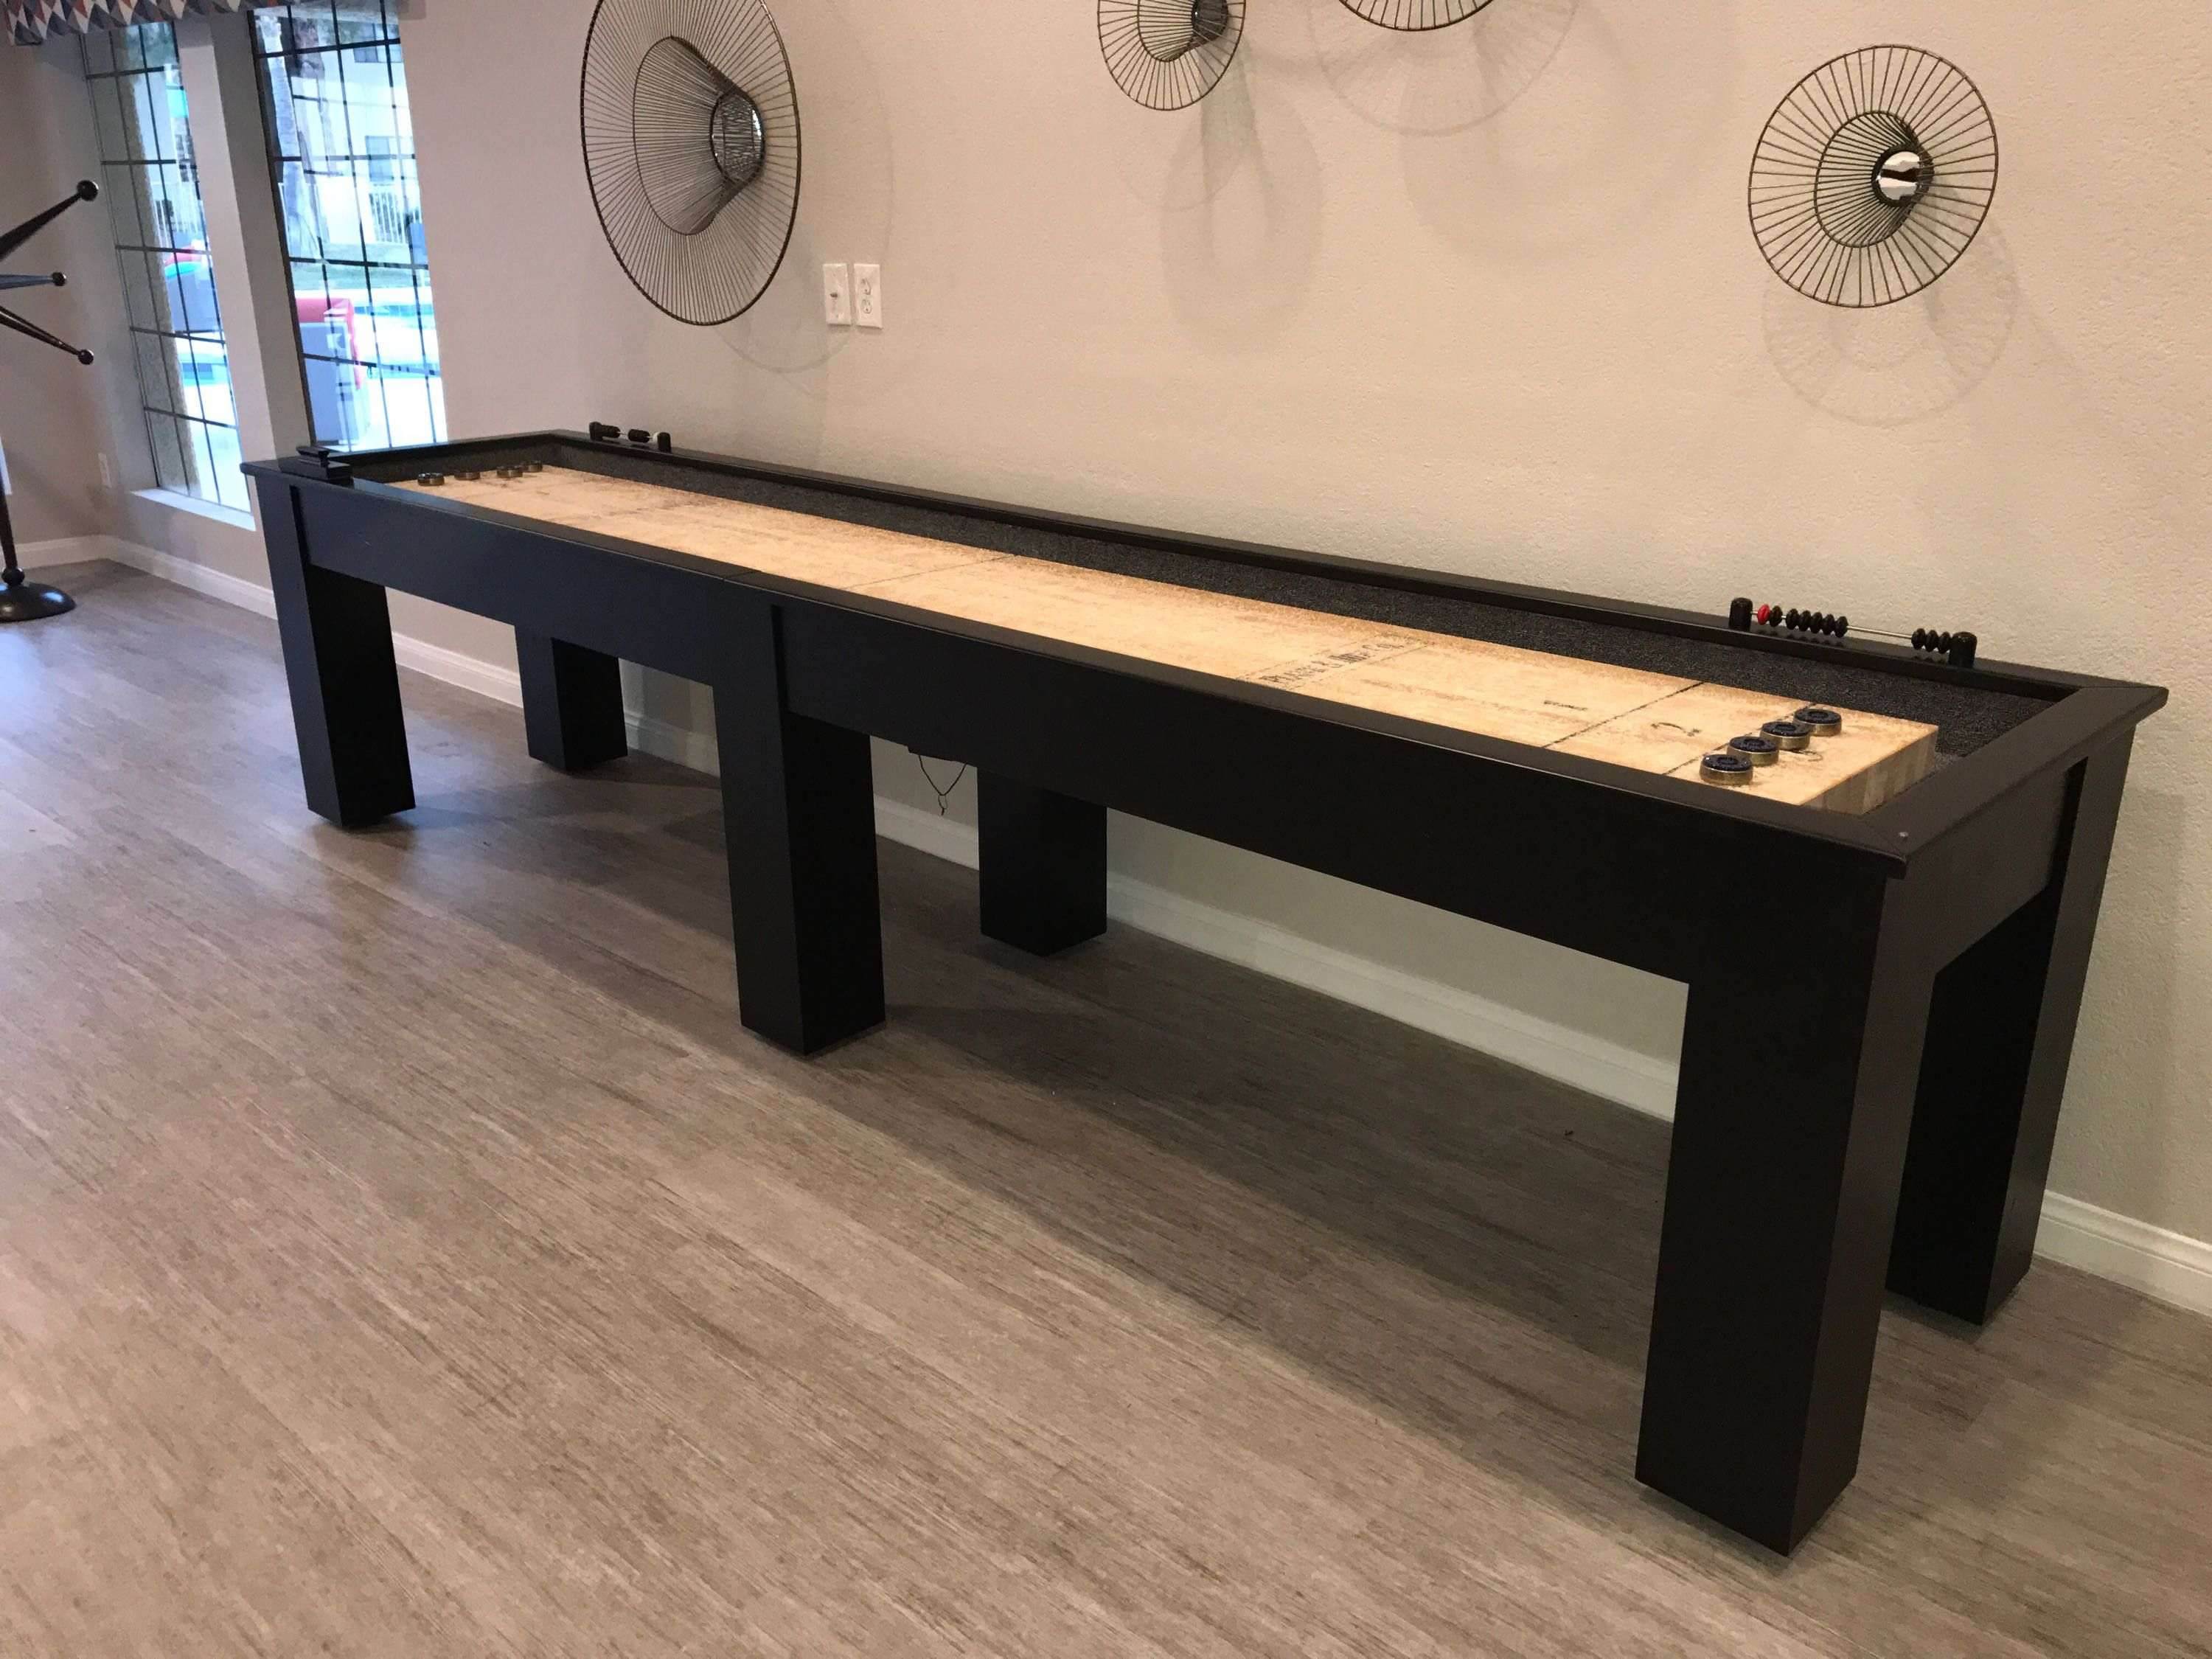 playcraft geor does fresh table cherry walmart much cost a shuffleboard own how of